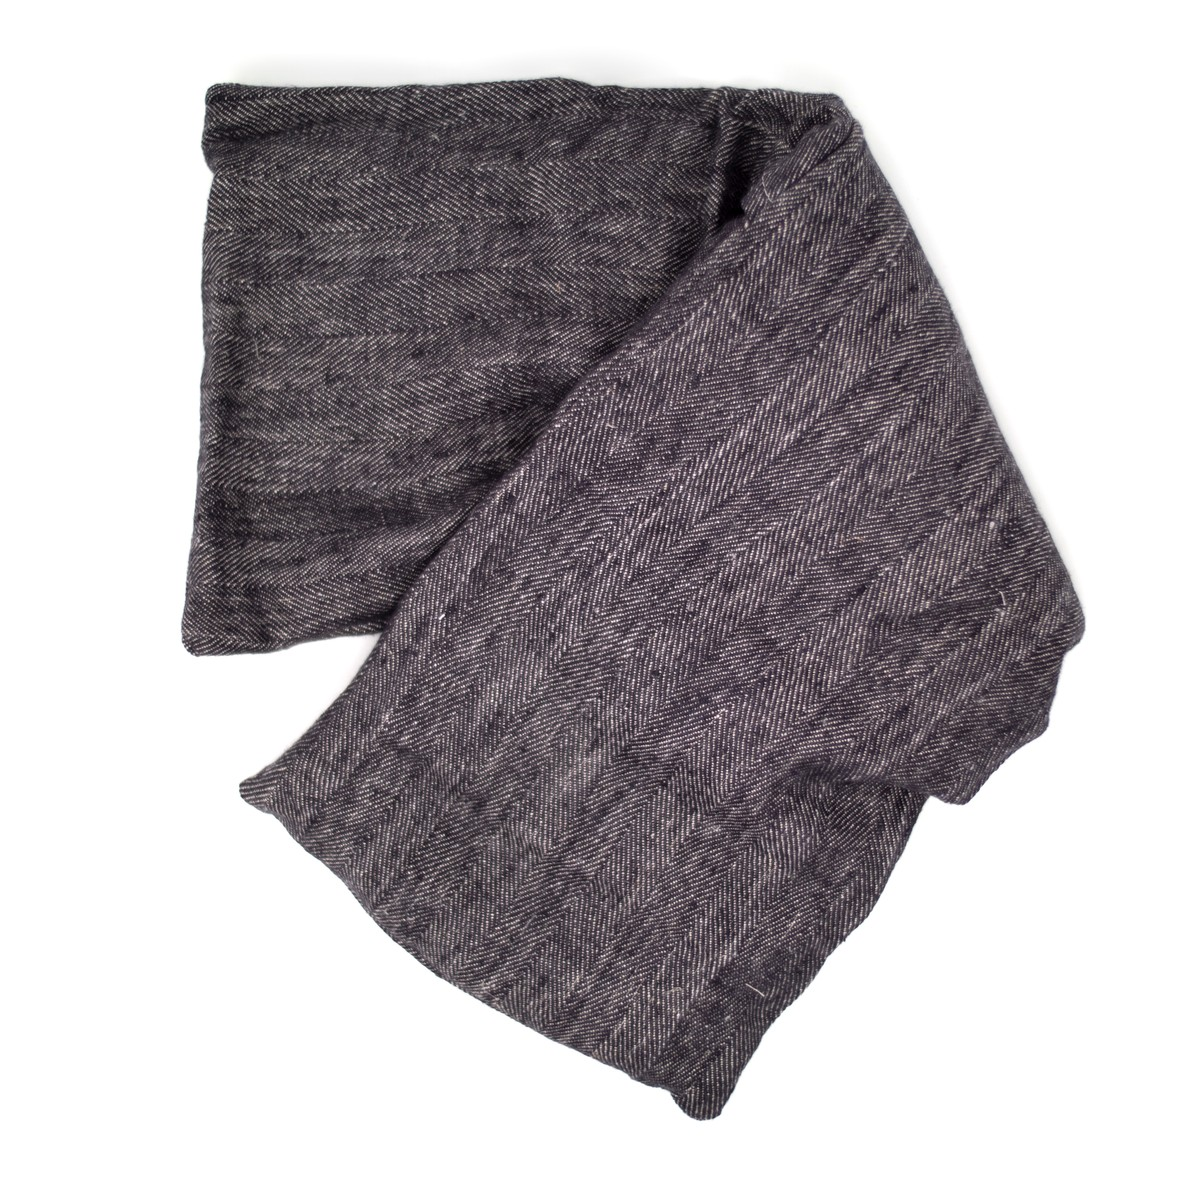 Photo of Herringbone Linen Hot and Cold Pack